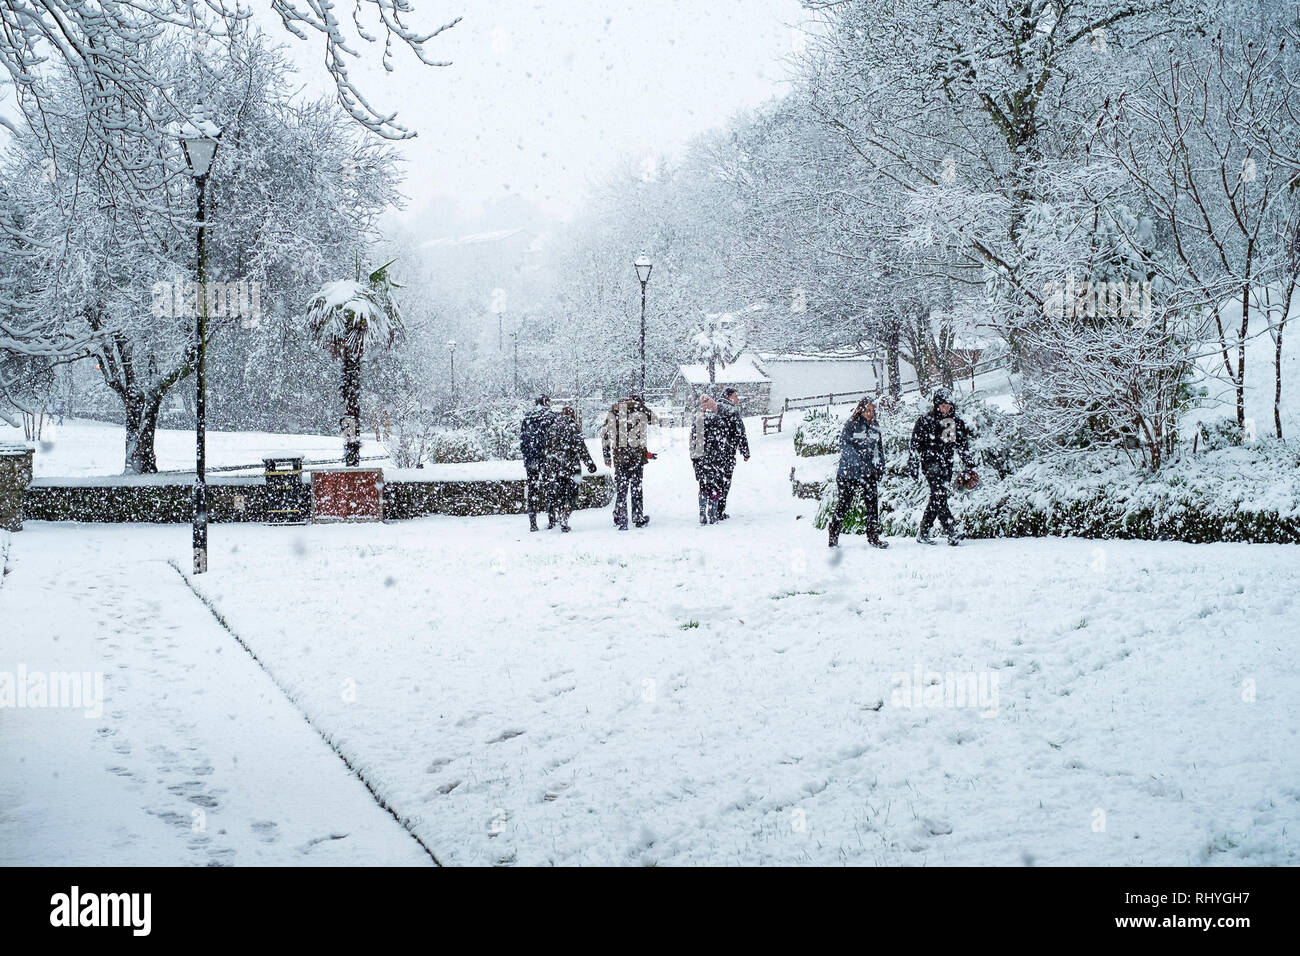 People walking through heavy snowfall in Trenance Park in Newquay in Cornwall. - Stock Image